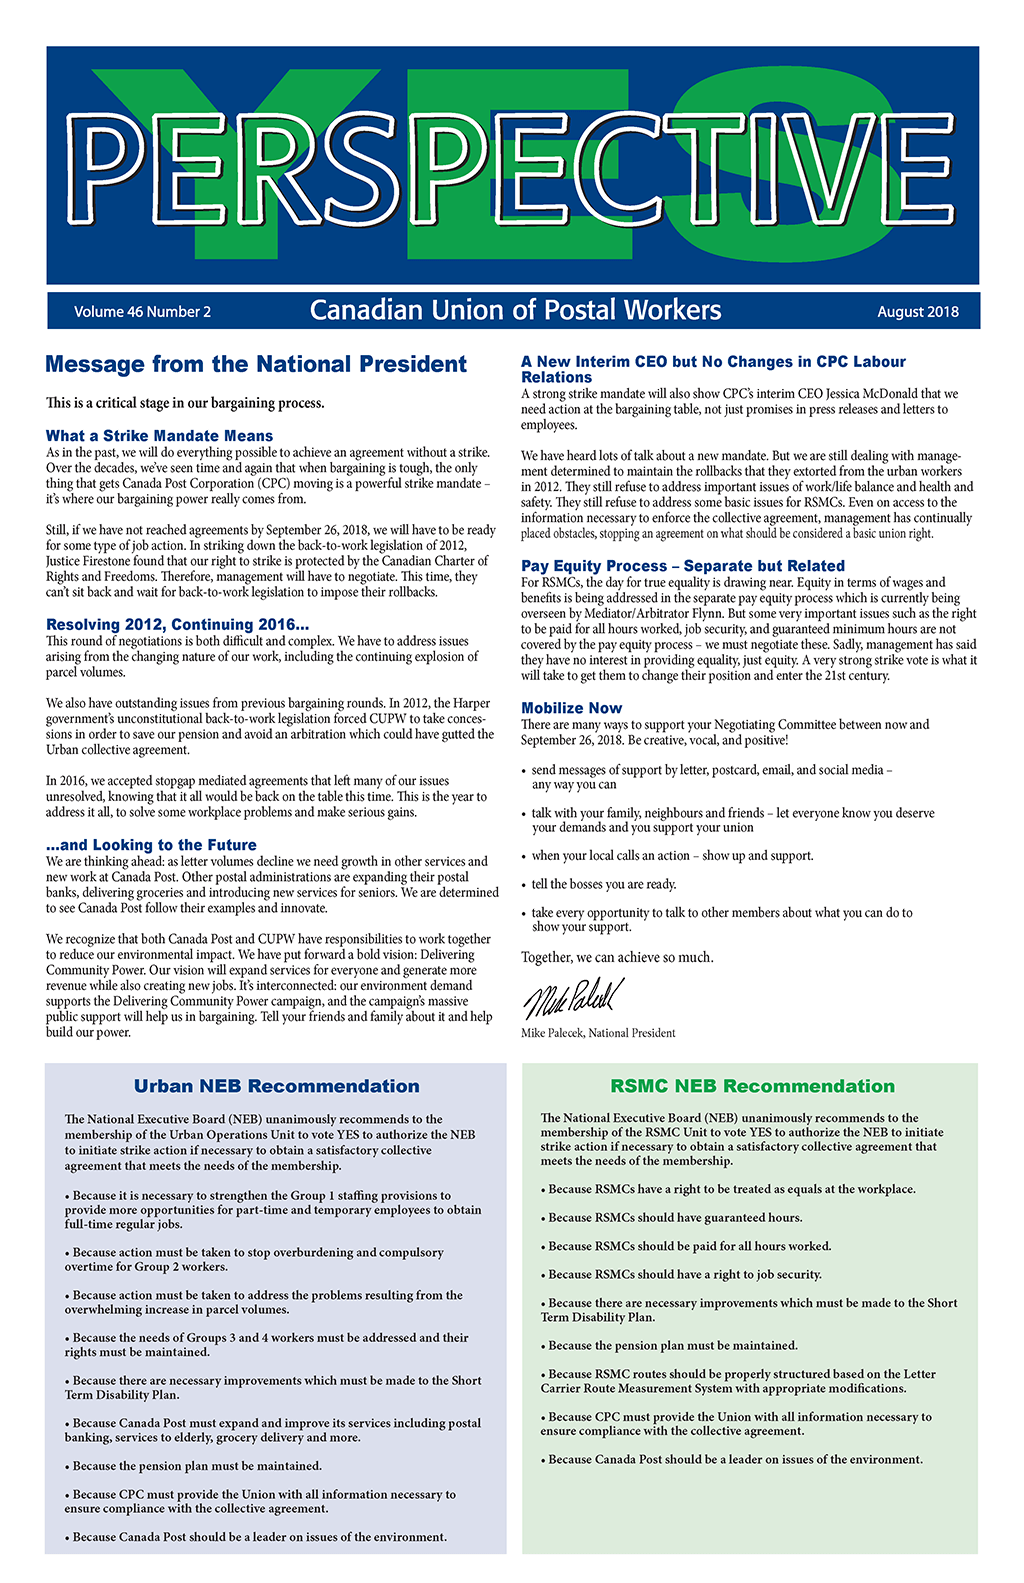 Urban and RSMC Strike Vote - 10 Reasons to Vote YES (Perspective)